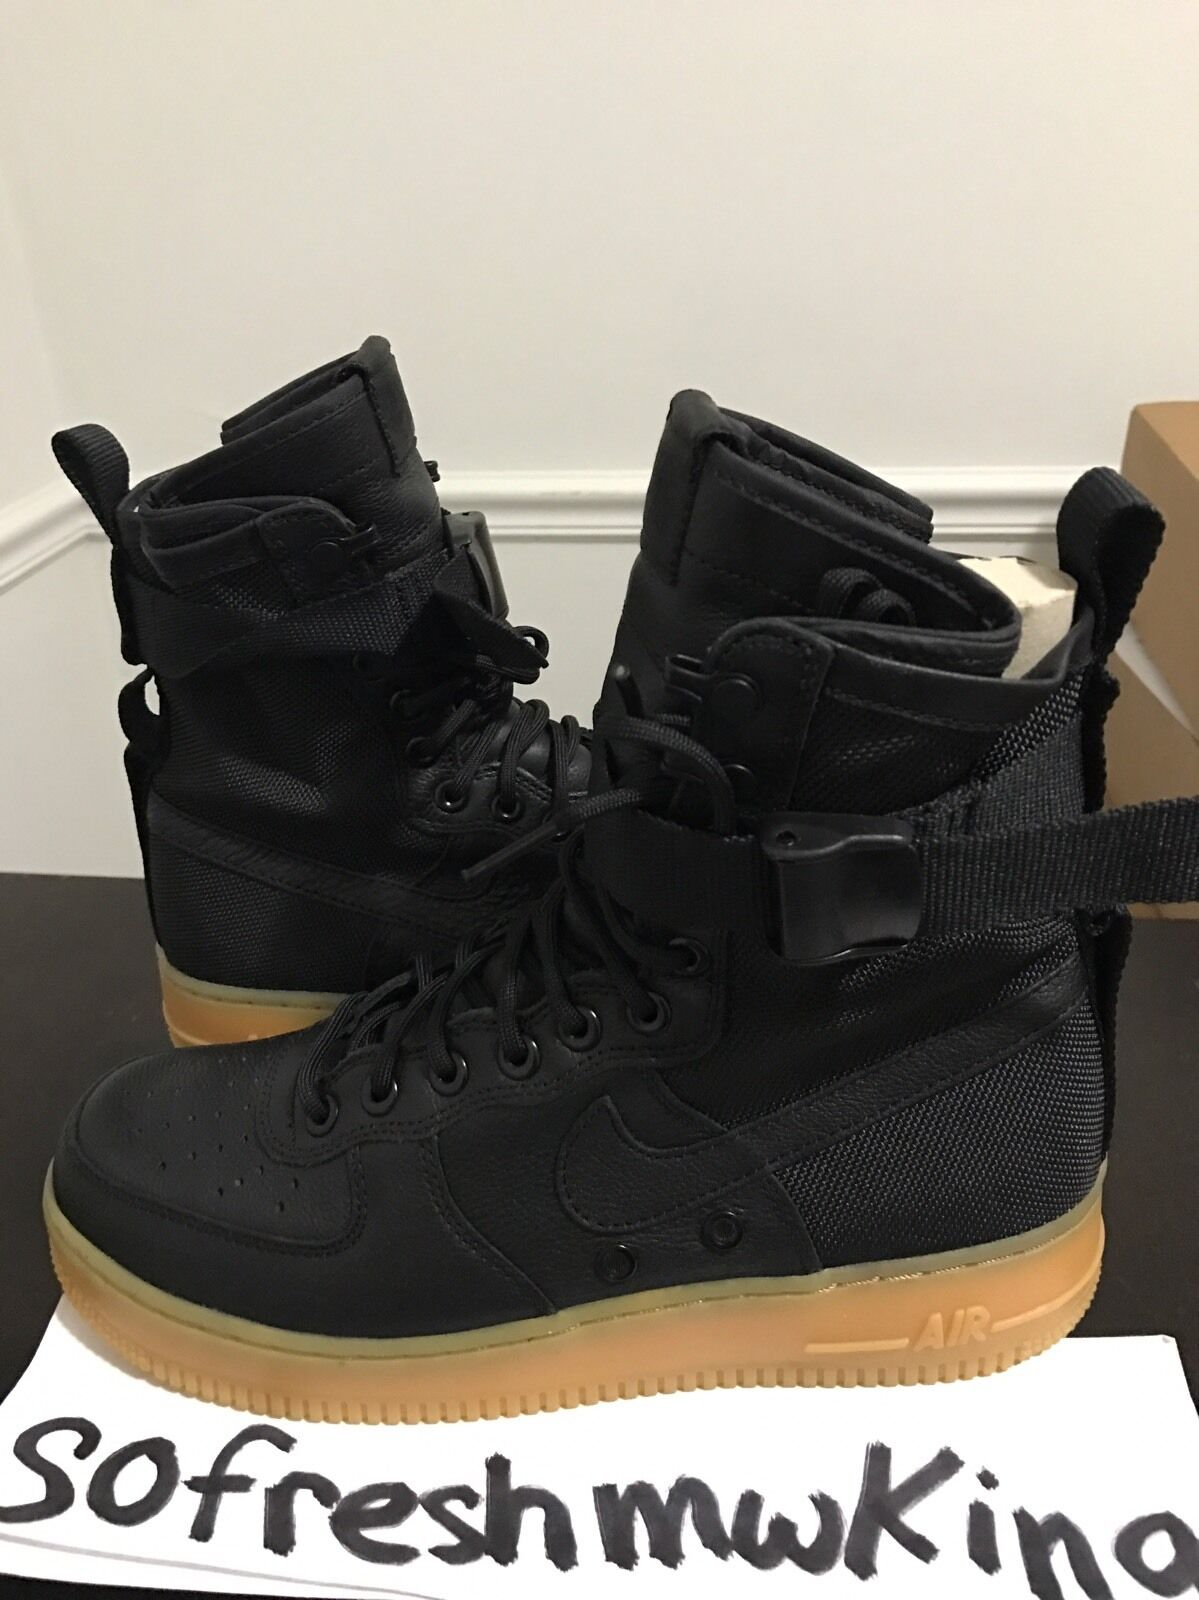 Nike Airforce One Special Field Nero Sz 9 Af1 Sf Af1 9 ! Beige White Olive Bone 1 359820